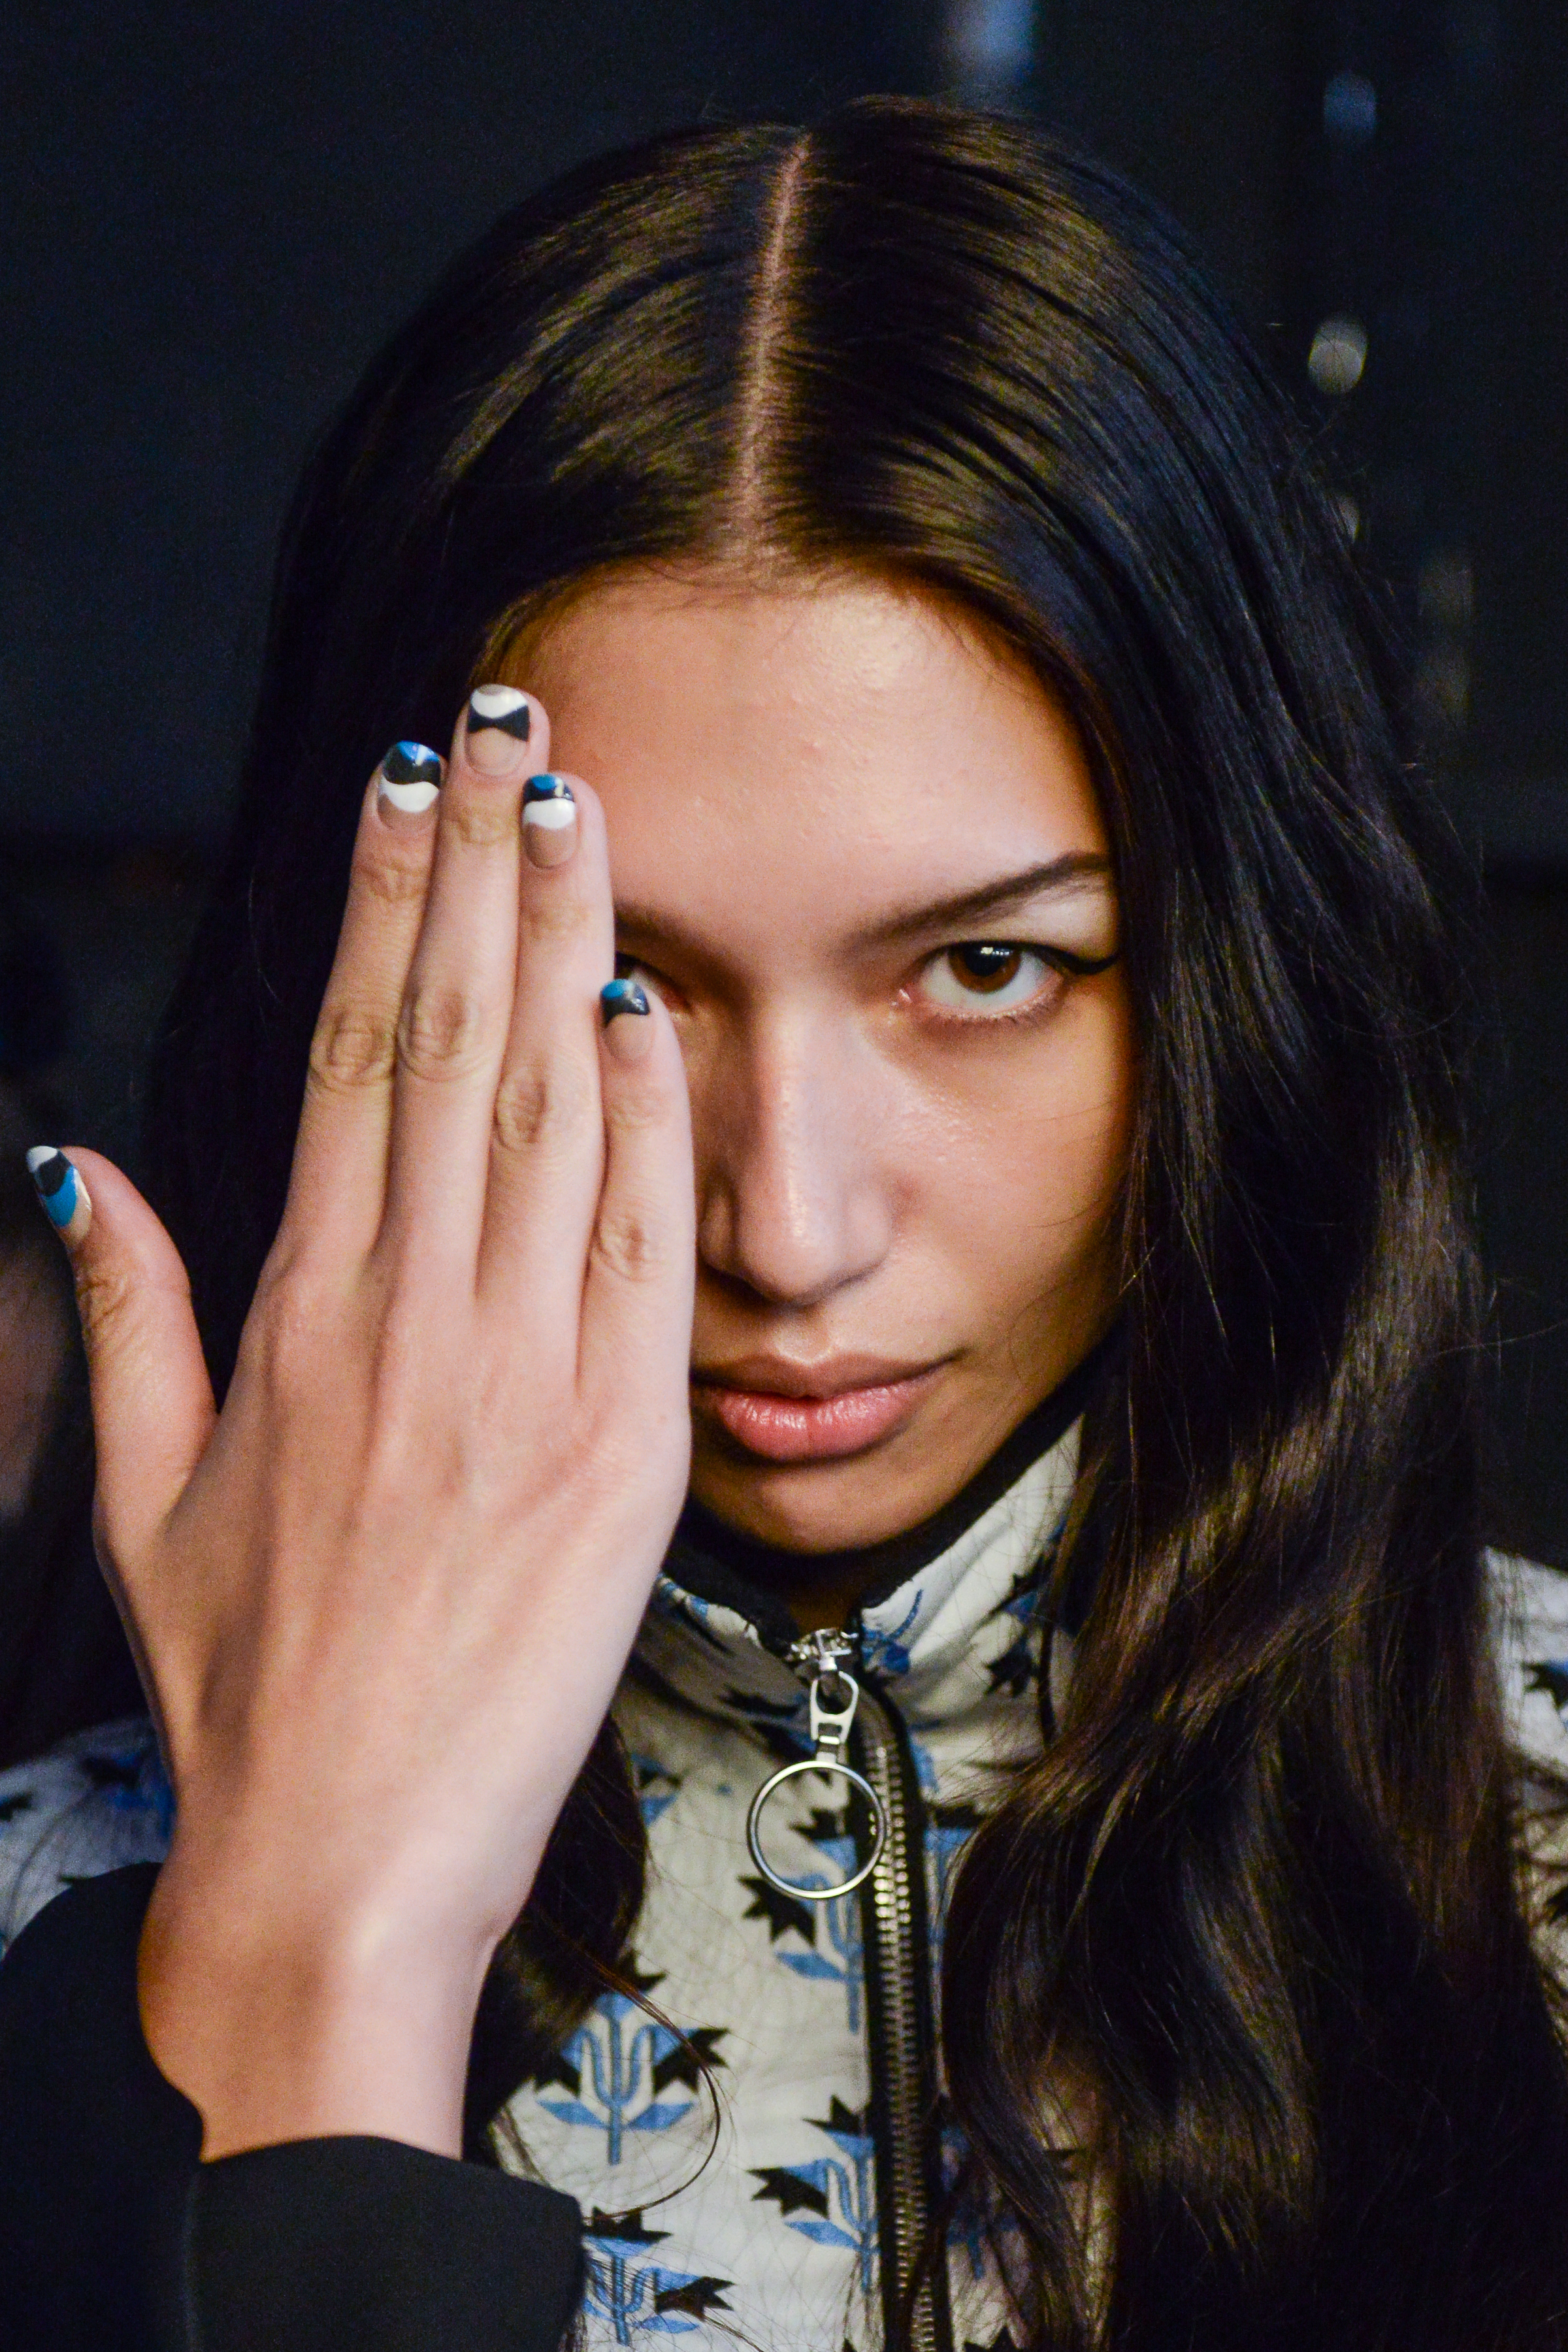 Fashion Week Spring/Summer '17 HOW-TOs: China Glaze Proves Why Nail Art Isn't Going Away in 2017